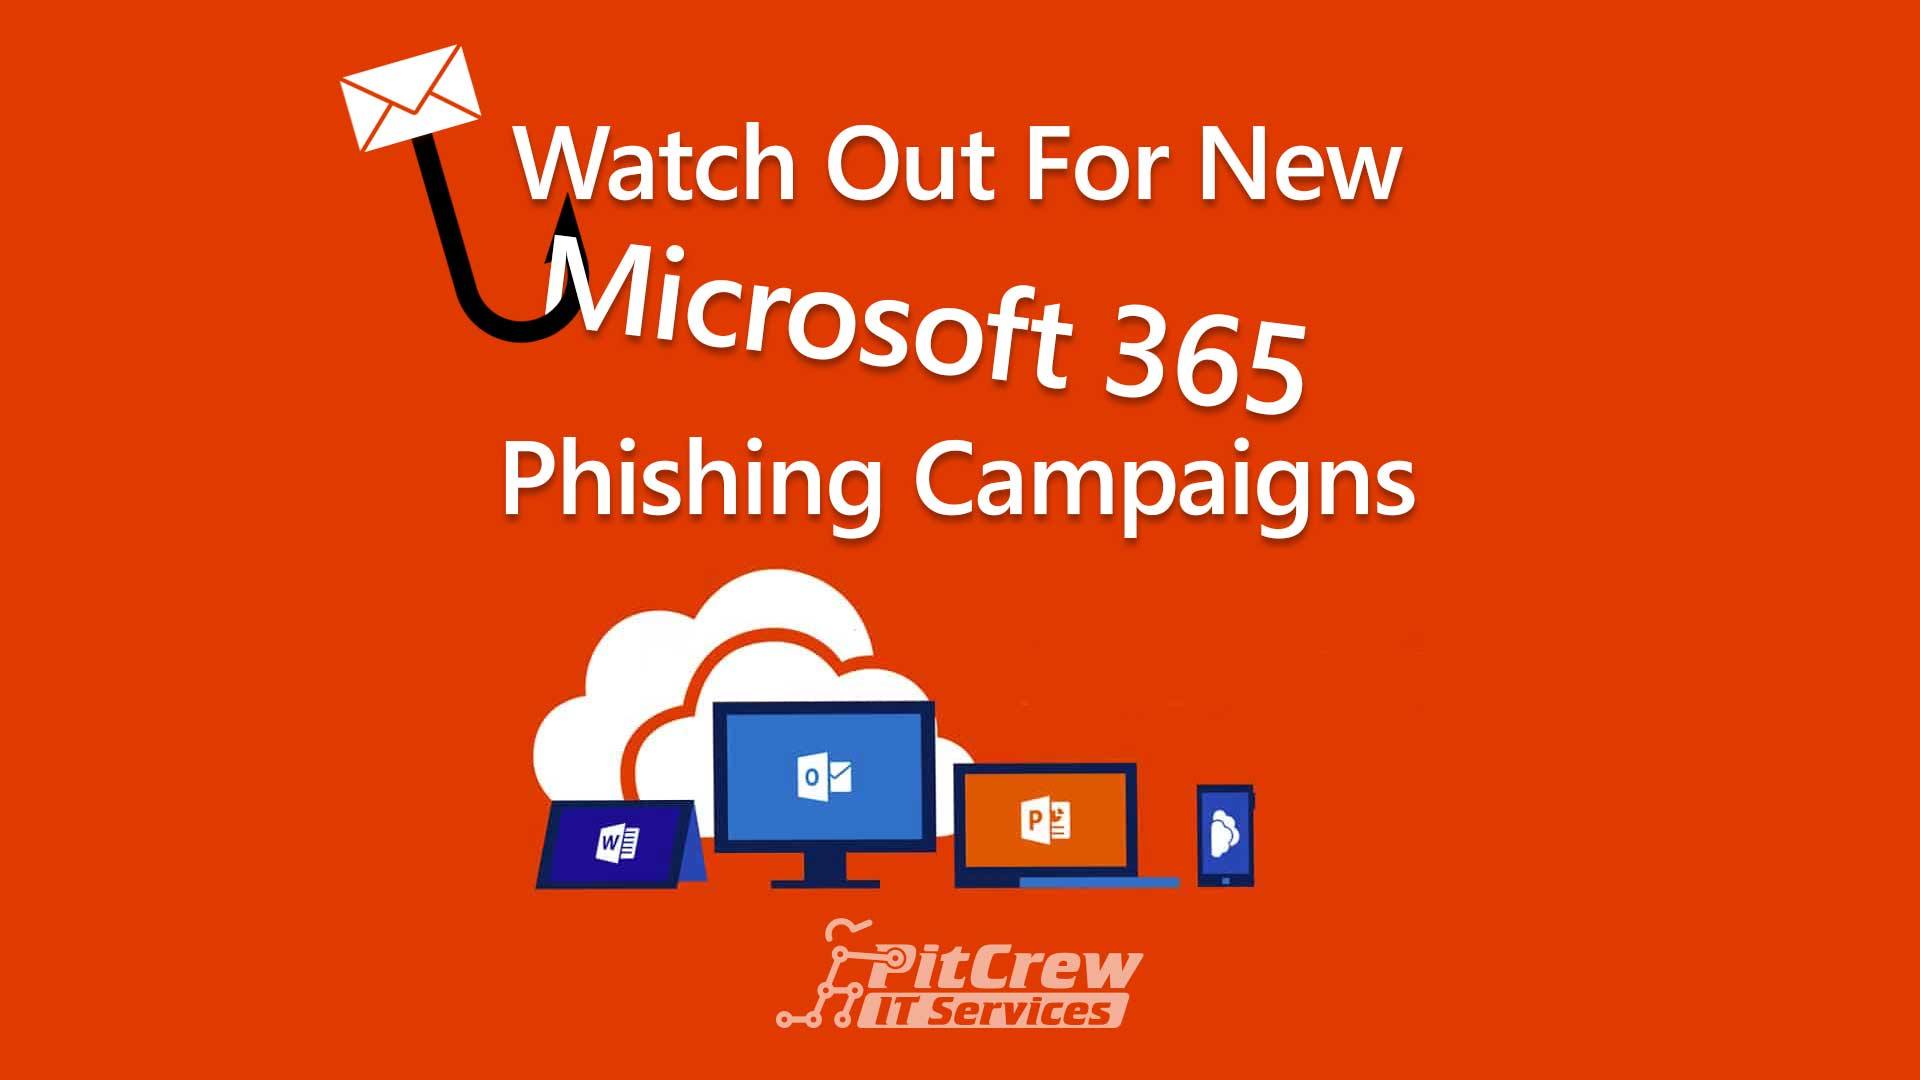 Watch Out For New Microsoft 365 Phishing Campaigns